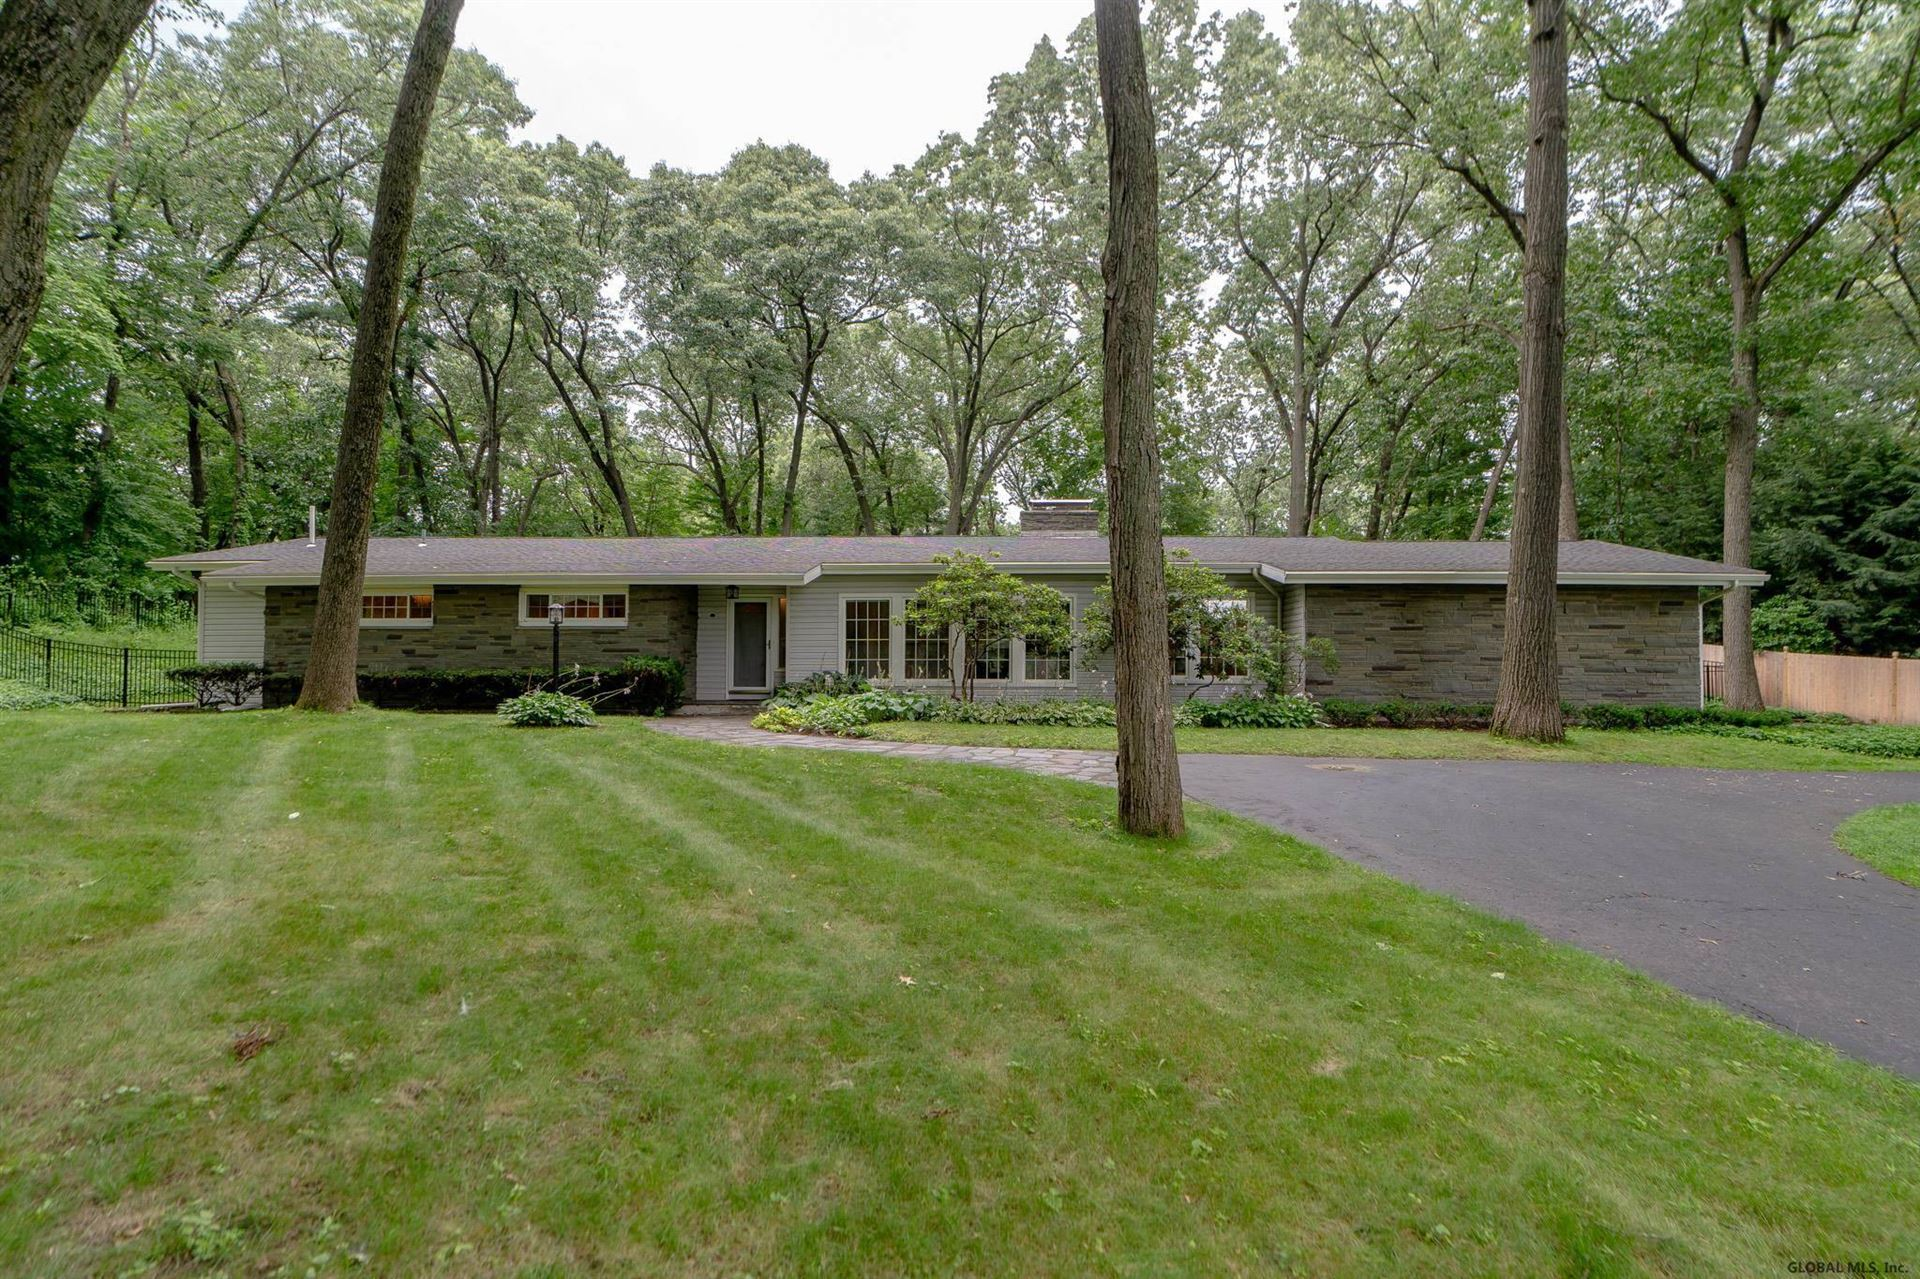 9 HILLS RD, Colonie, NY 12211-1320 - #: 202124489